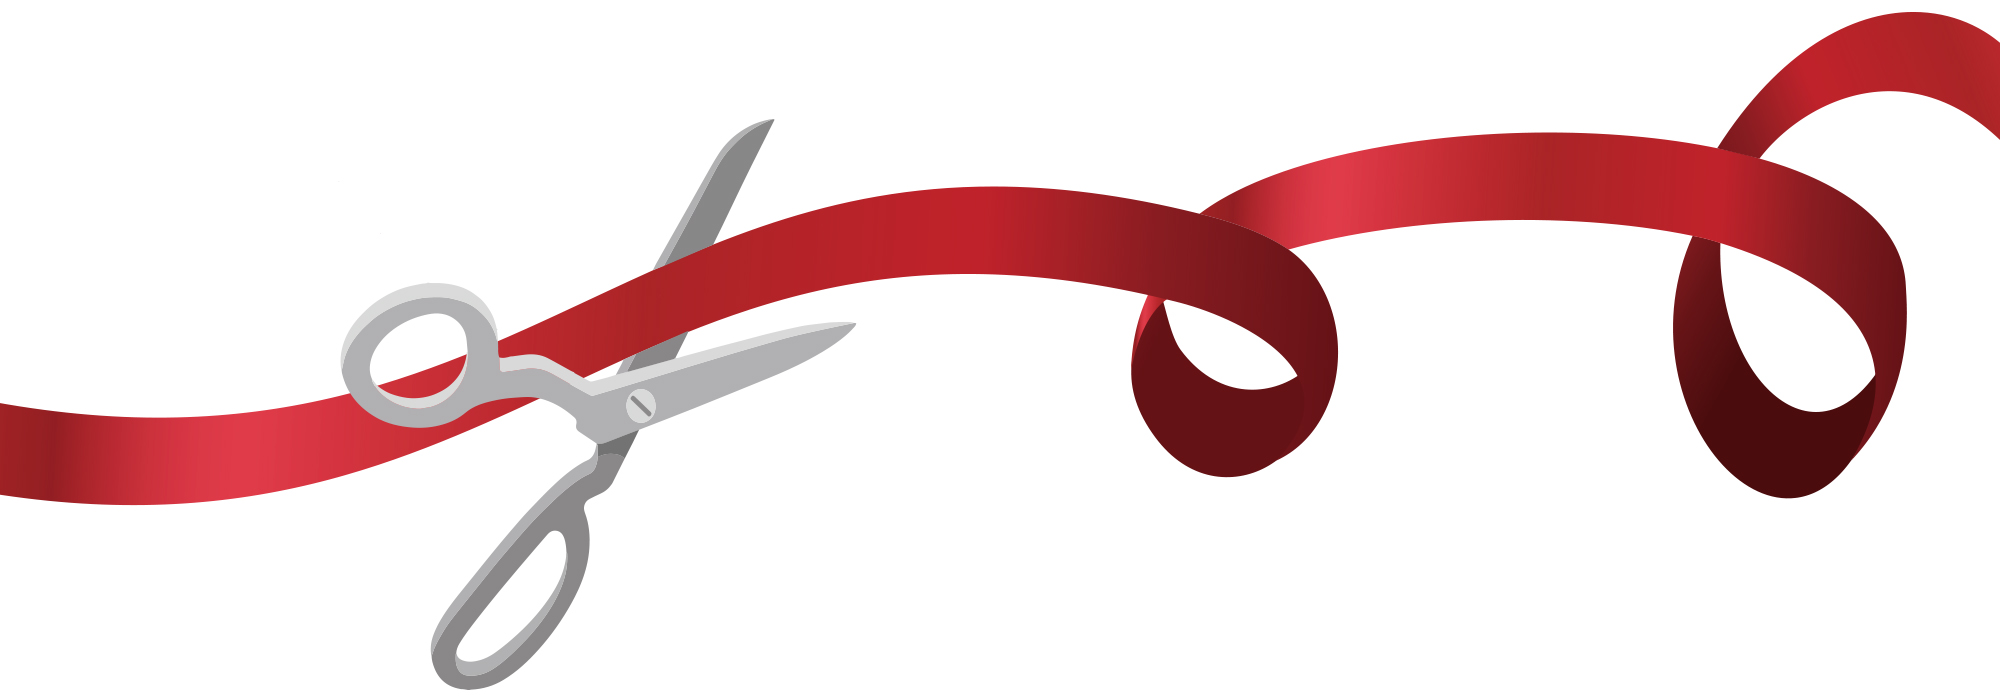 FMX Ribbon Cutting Saturday, April 7th